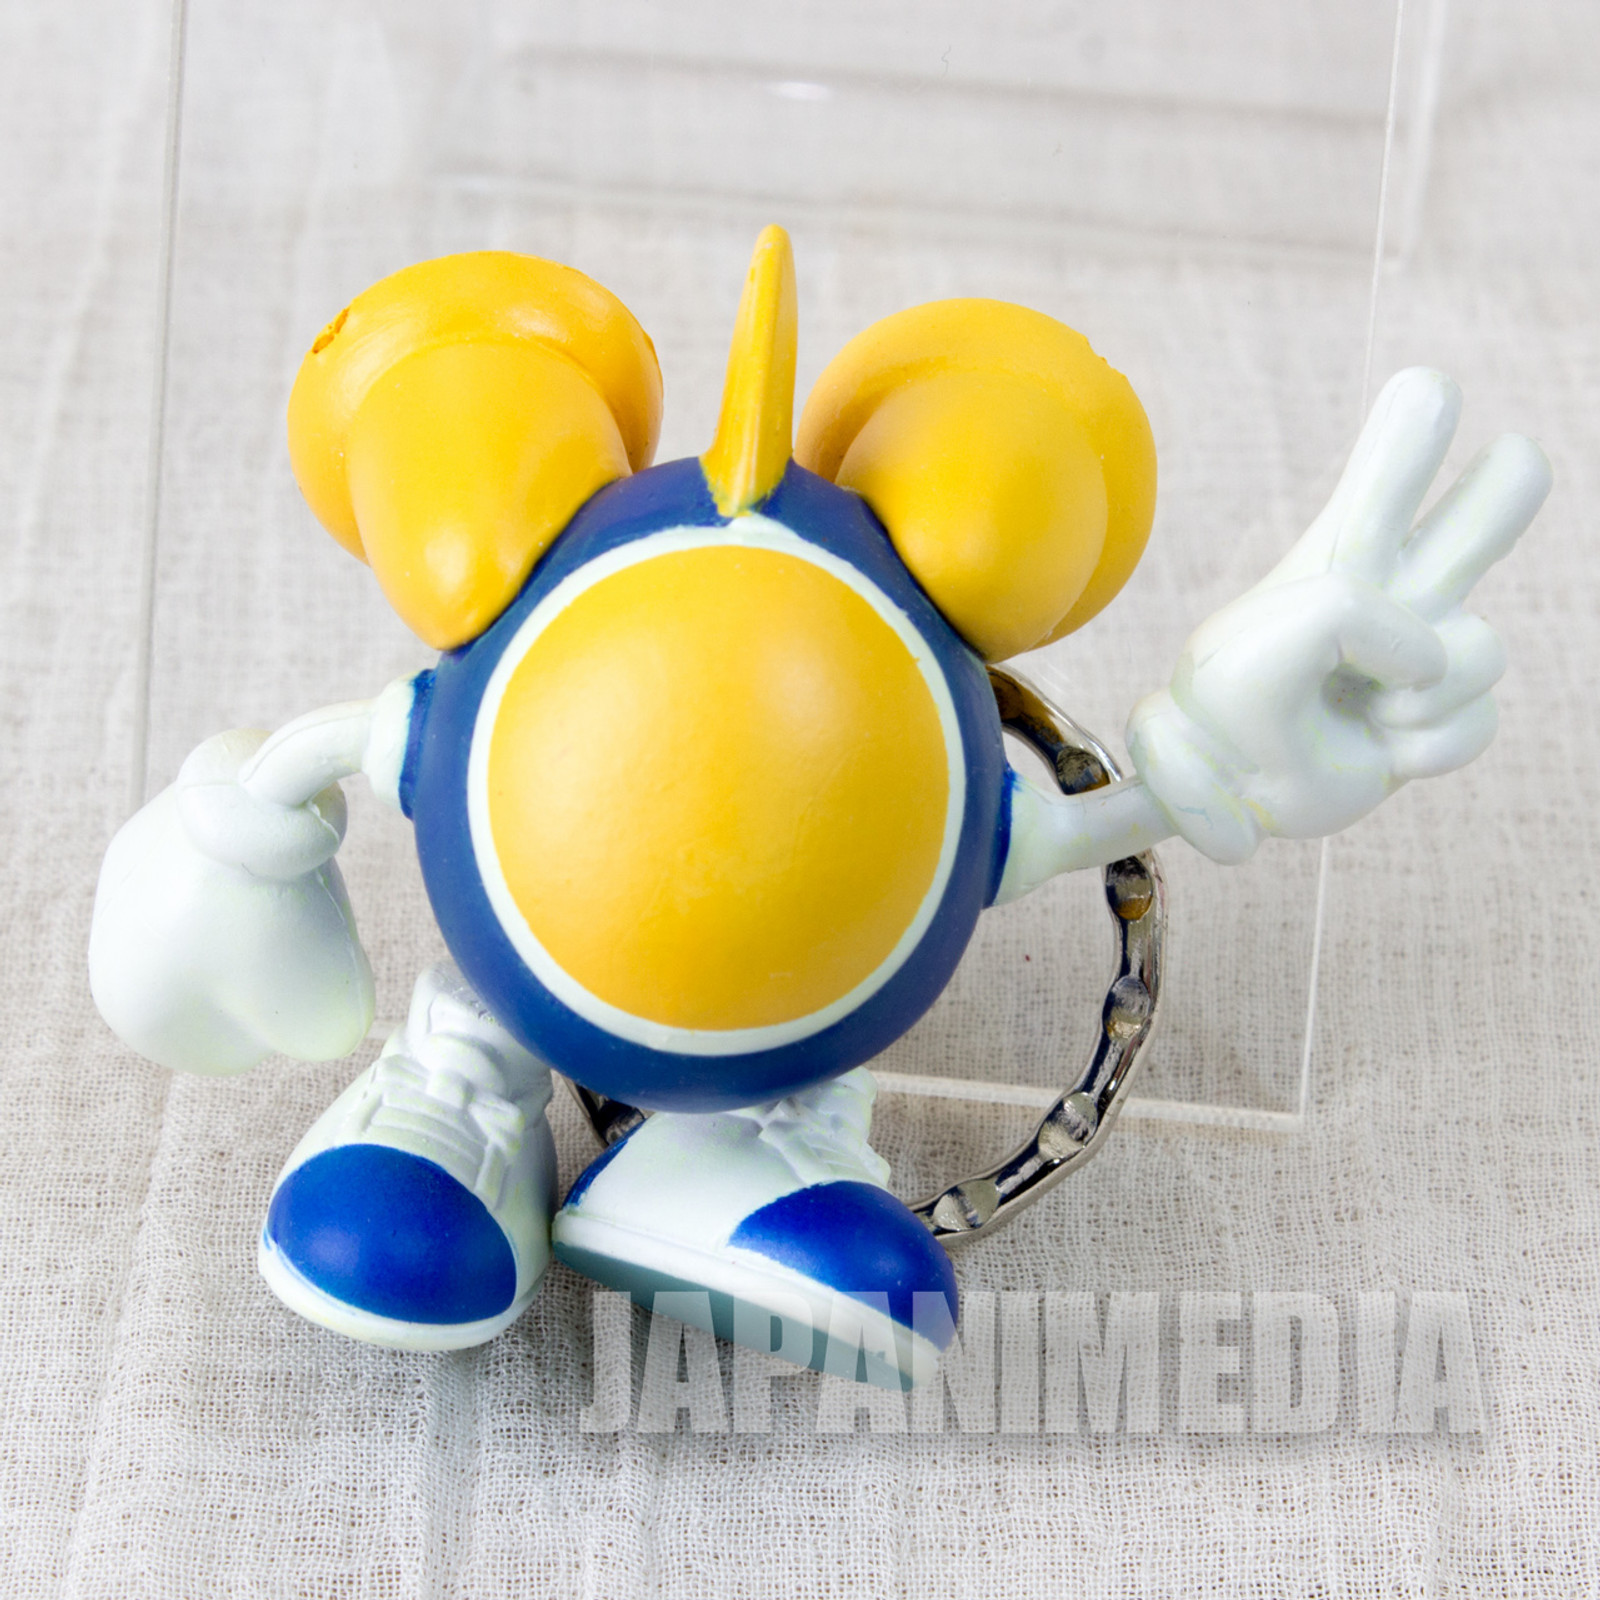 RARE! TwinBee Figure Key Chain Konami JAPAN GAME FAMICOM NES